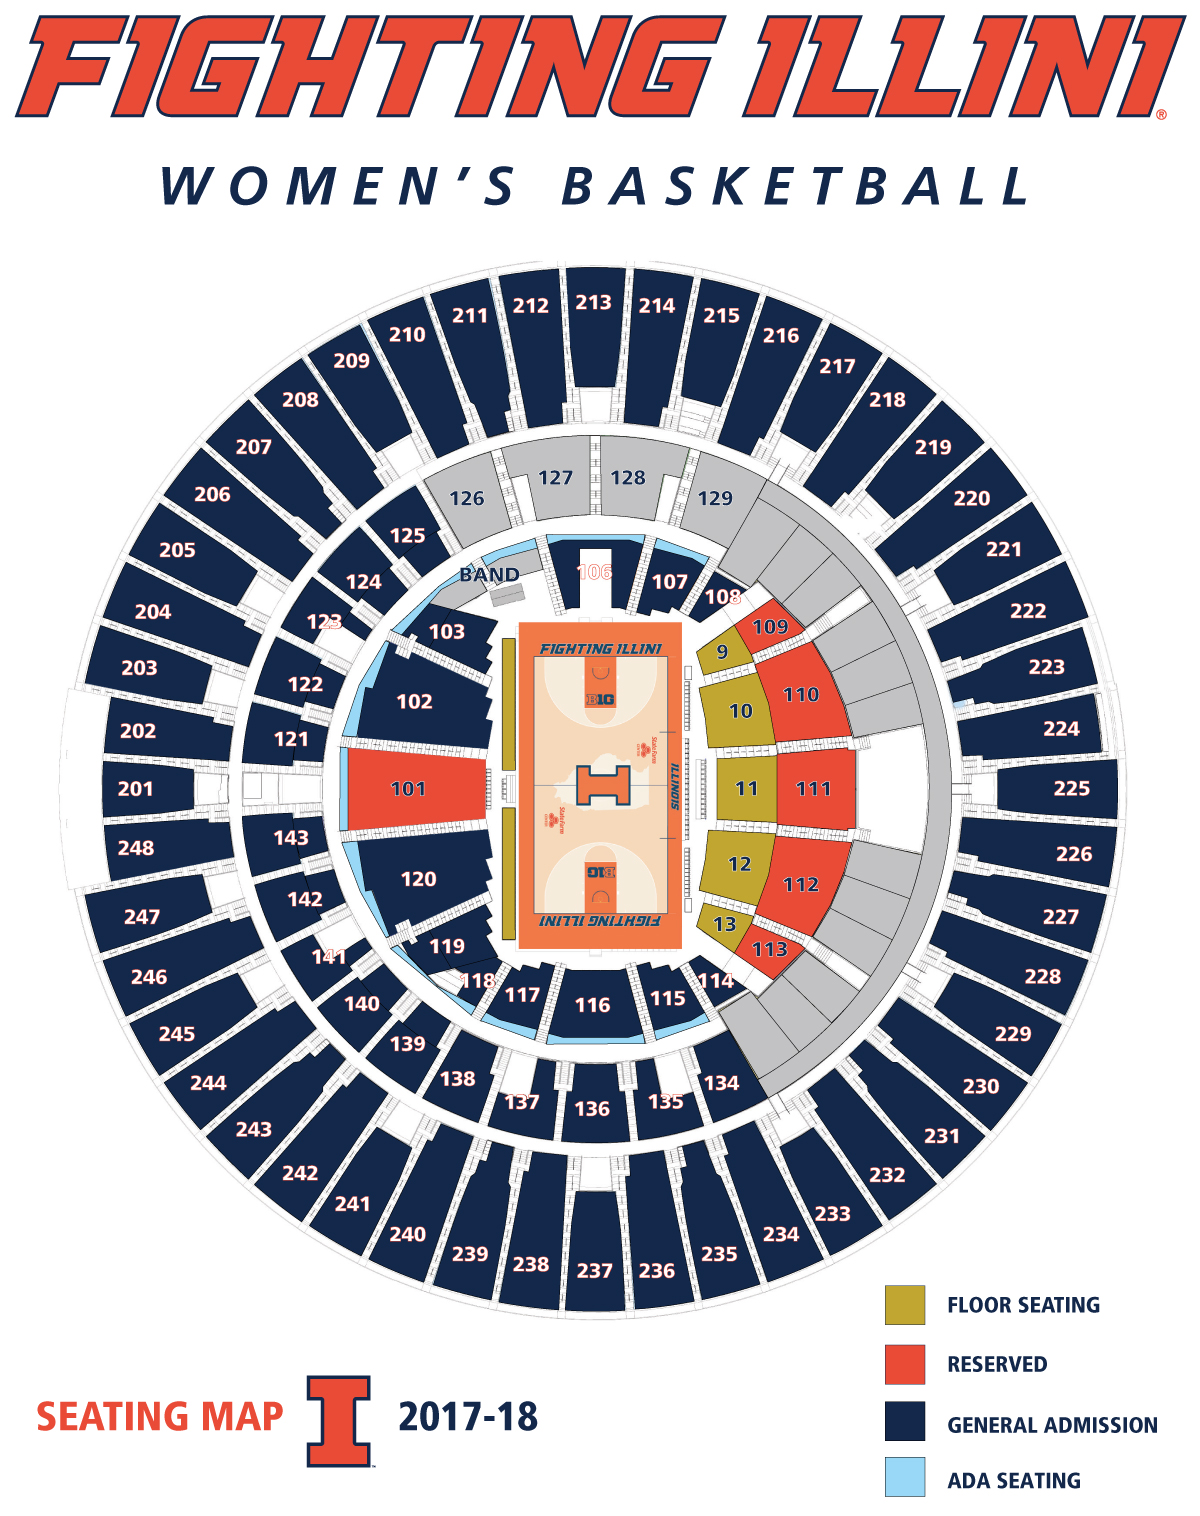 Illinois Women's Basketball Seating Map 2016-17